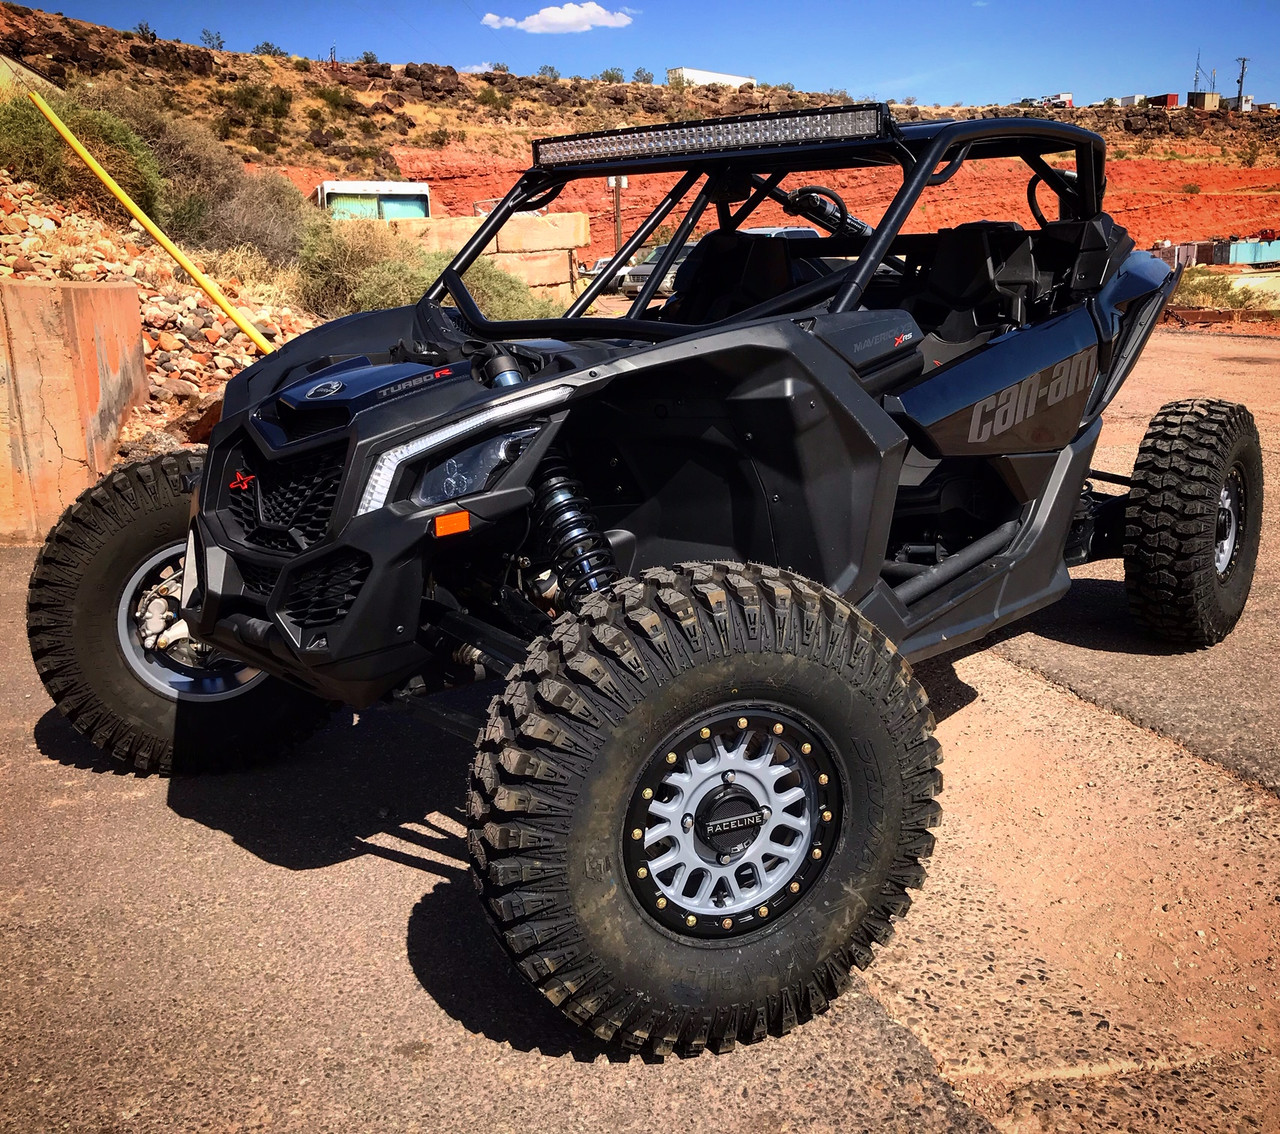 XFR Nemesis Cage with Rear Bumper for Can Am Maverick X3